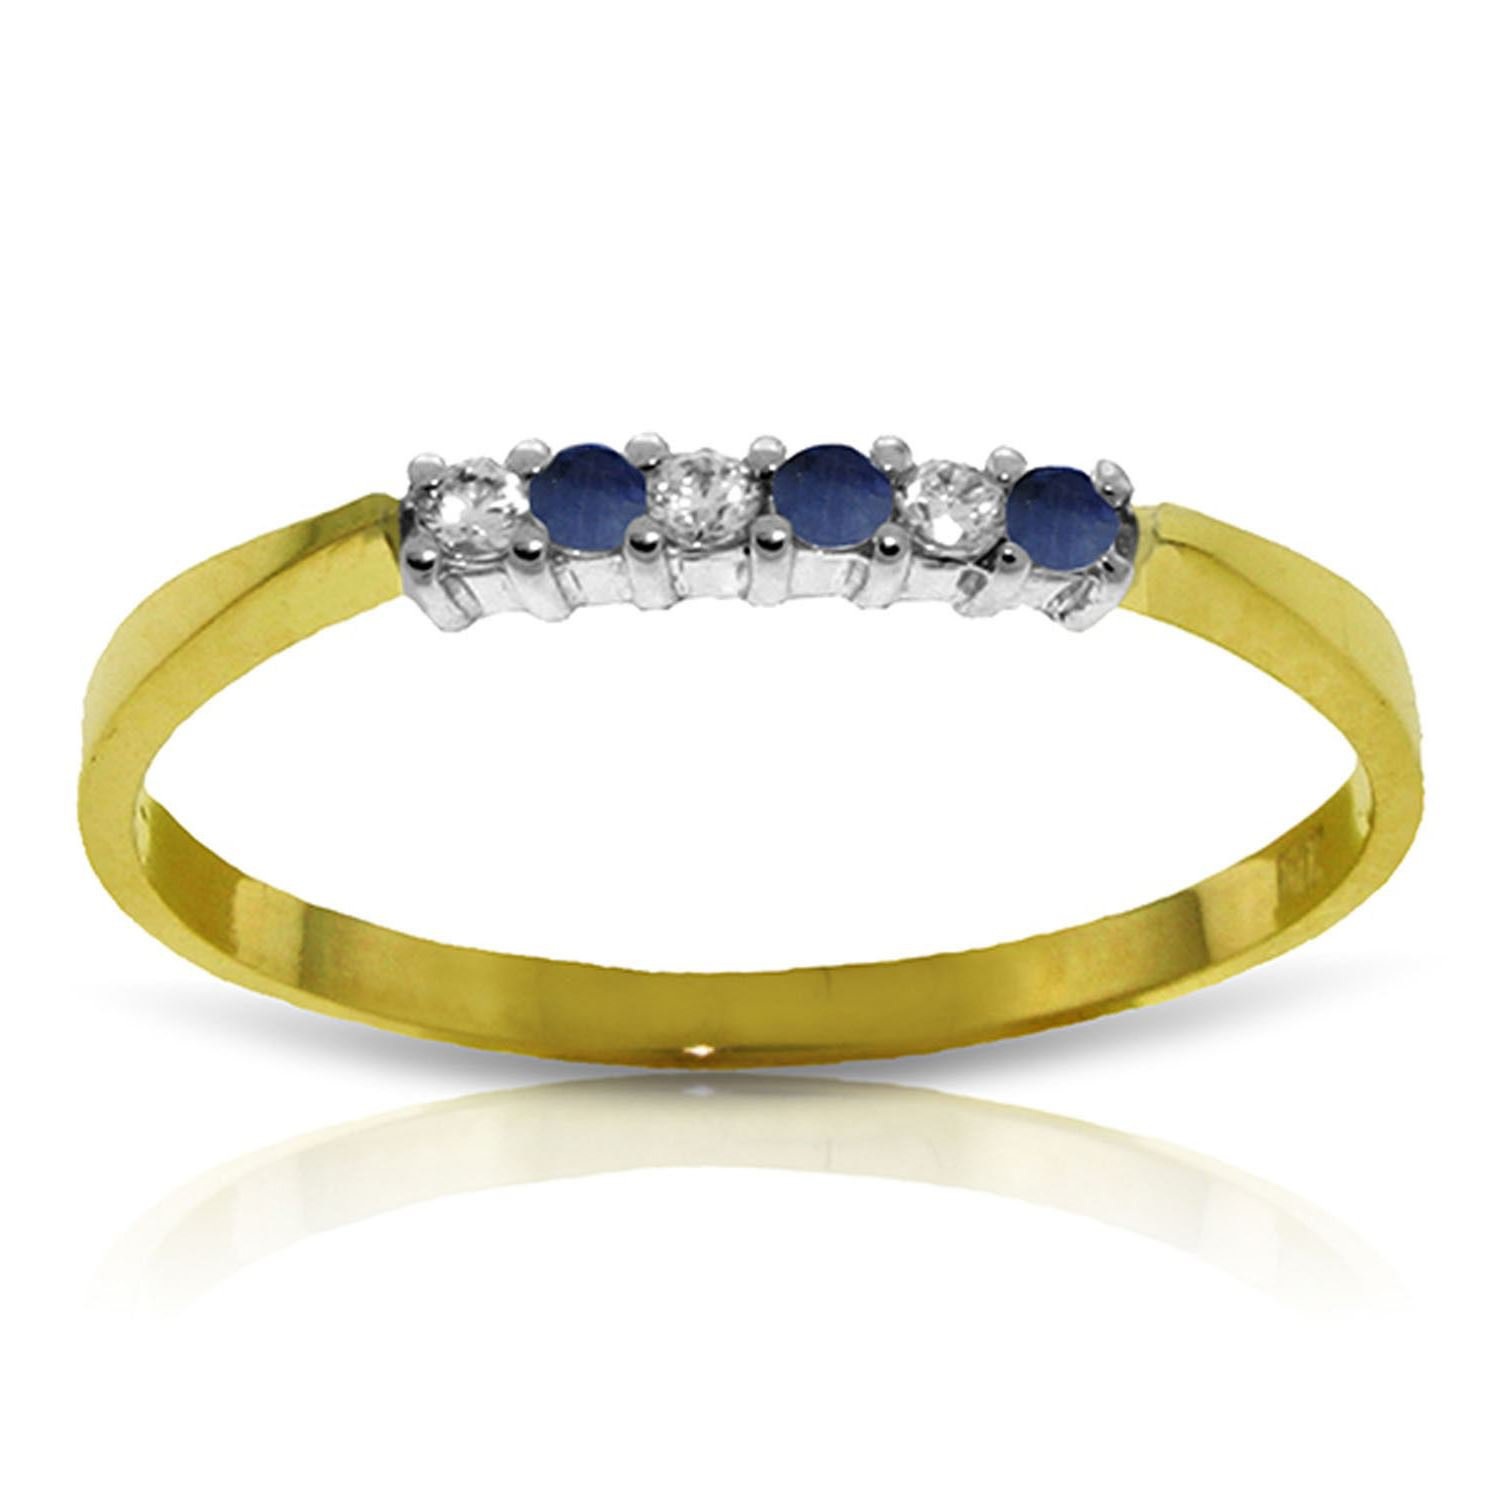 Sapphire Diamond Eternal Love Delicate Ring 14K Solid Yellow Gold 2818-Y